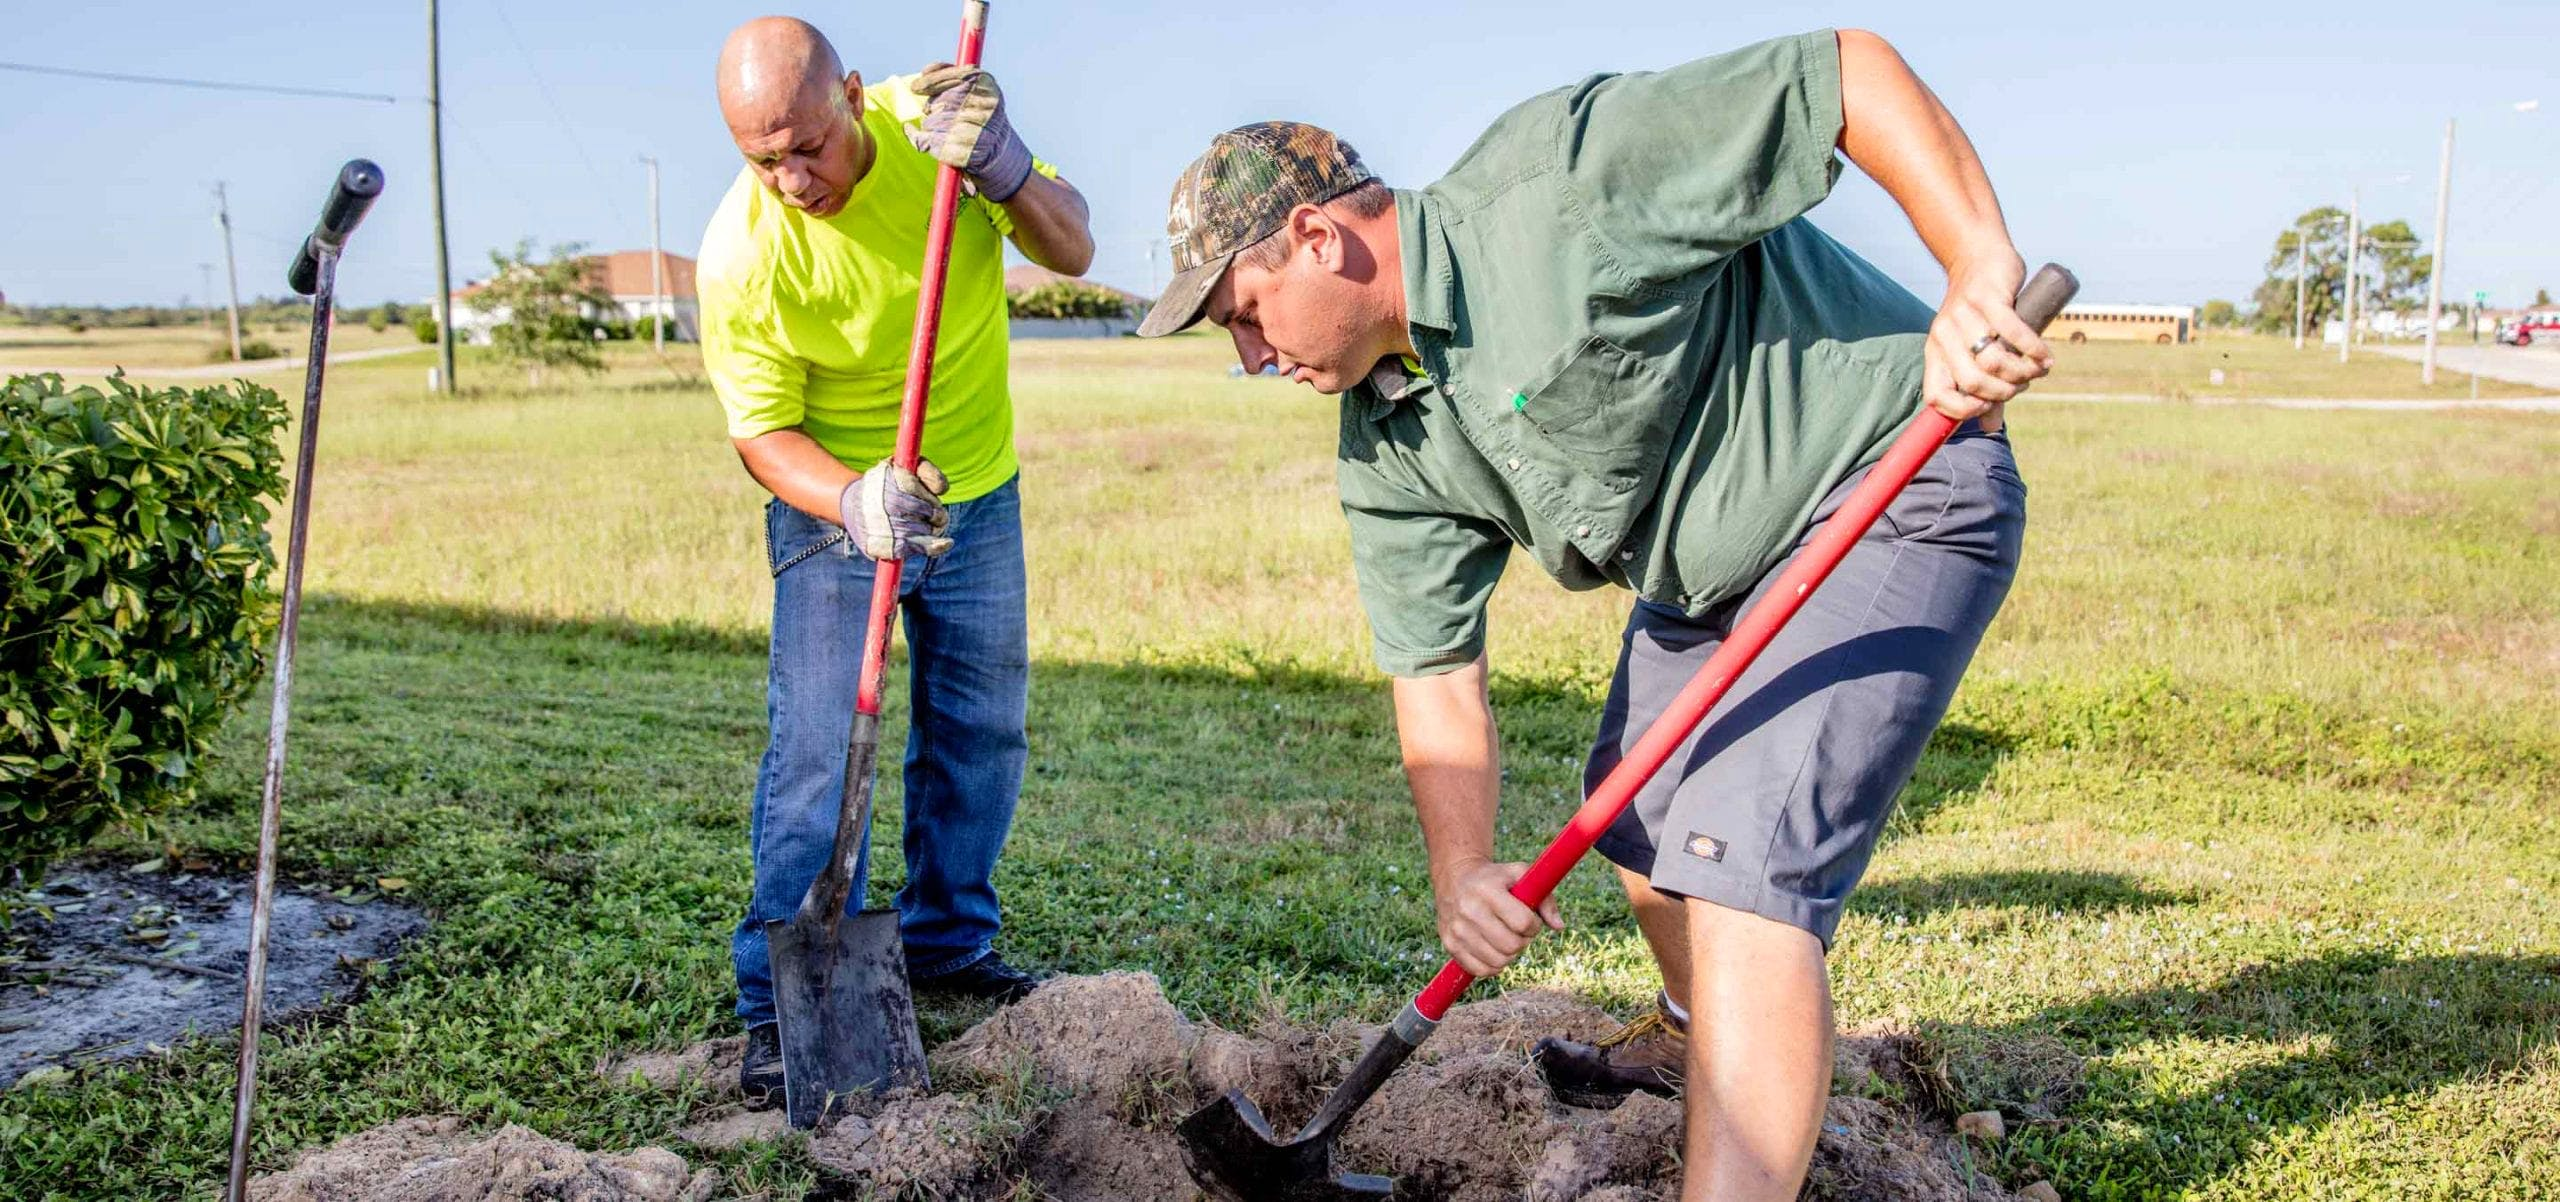 Septic do's and don'ts